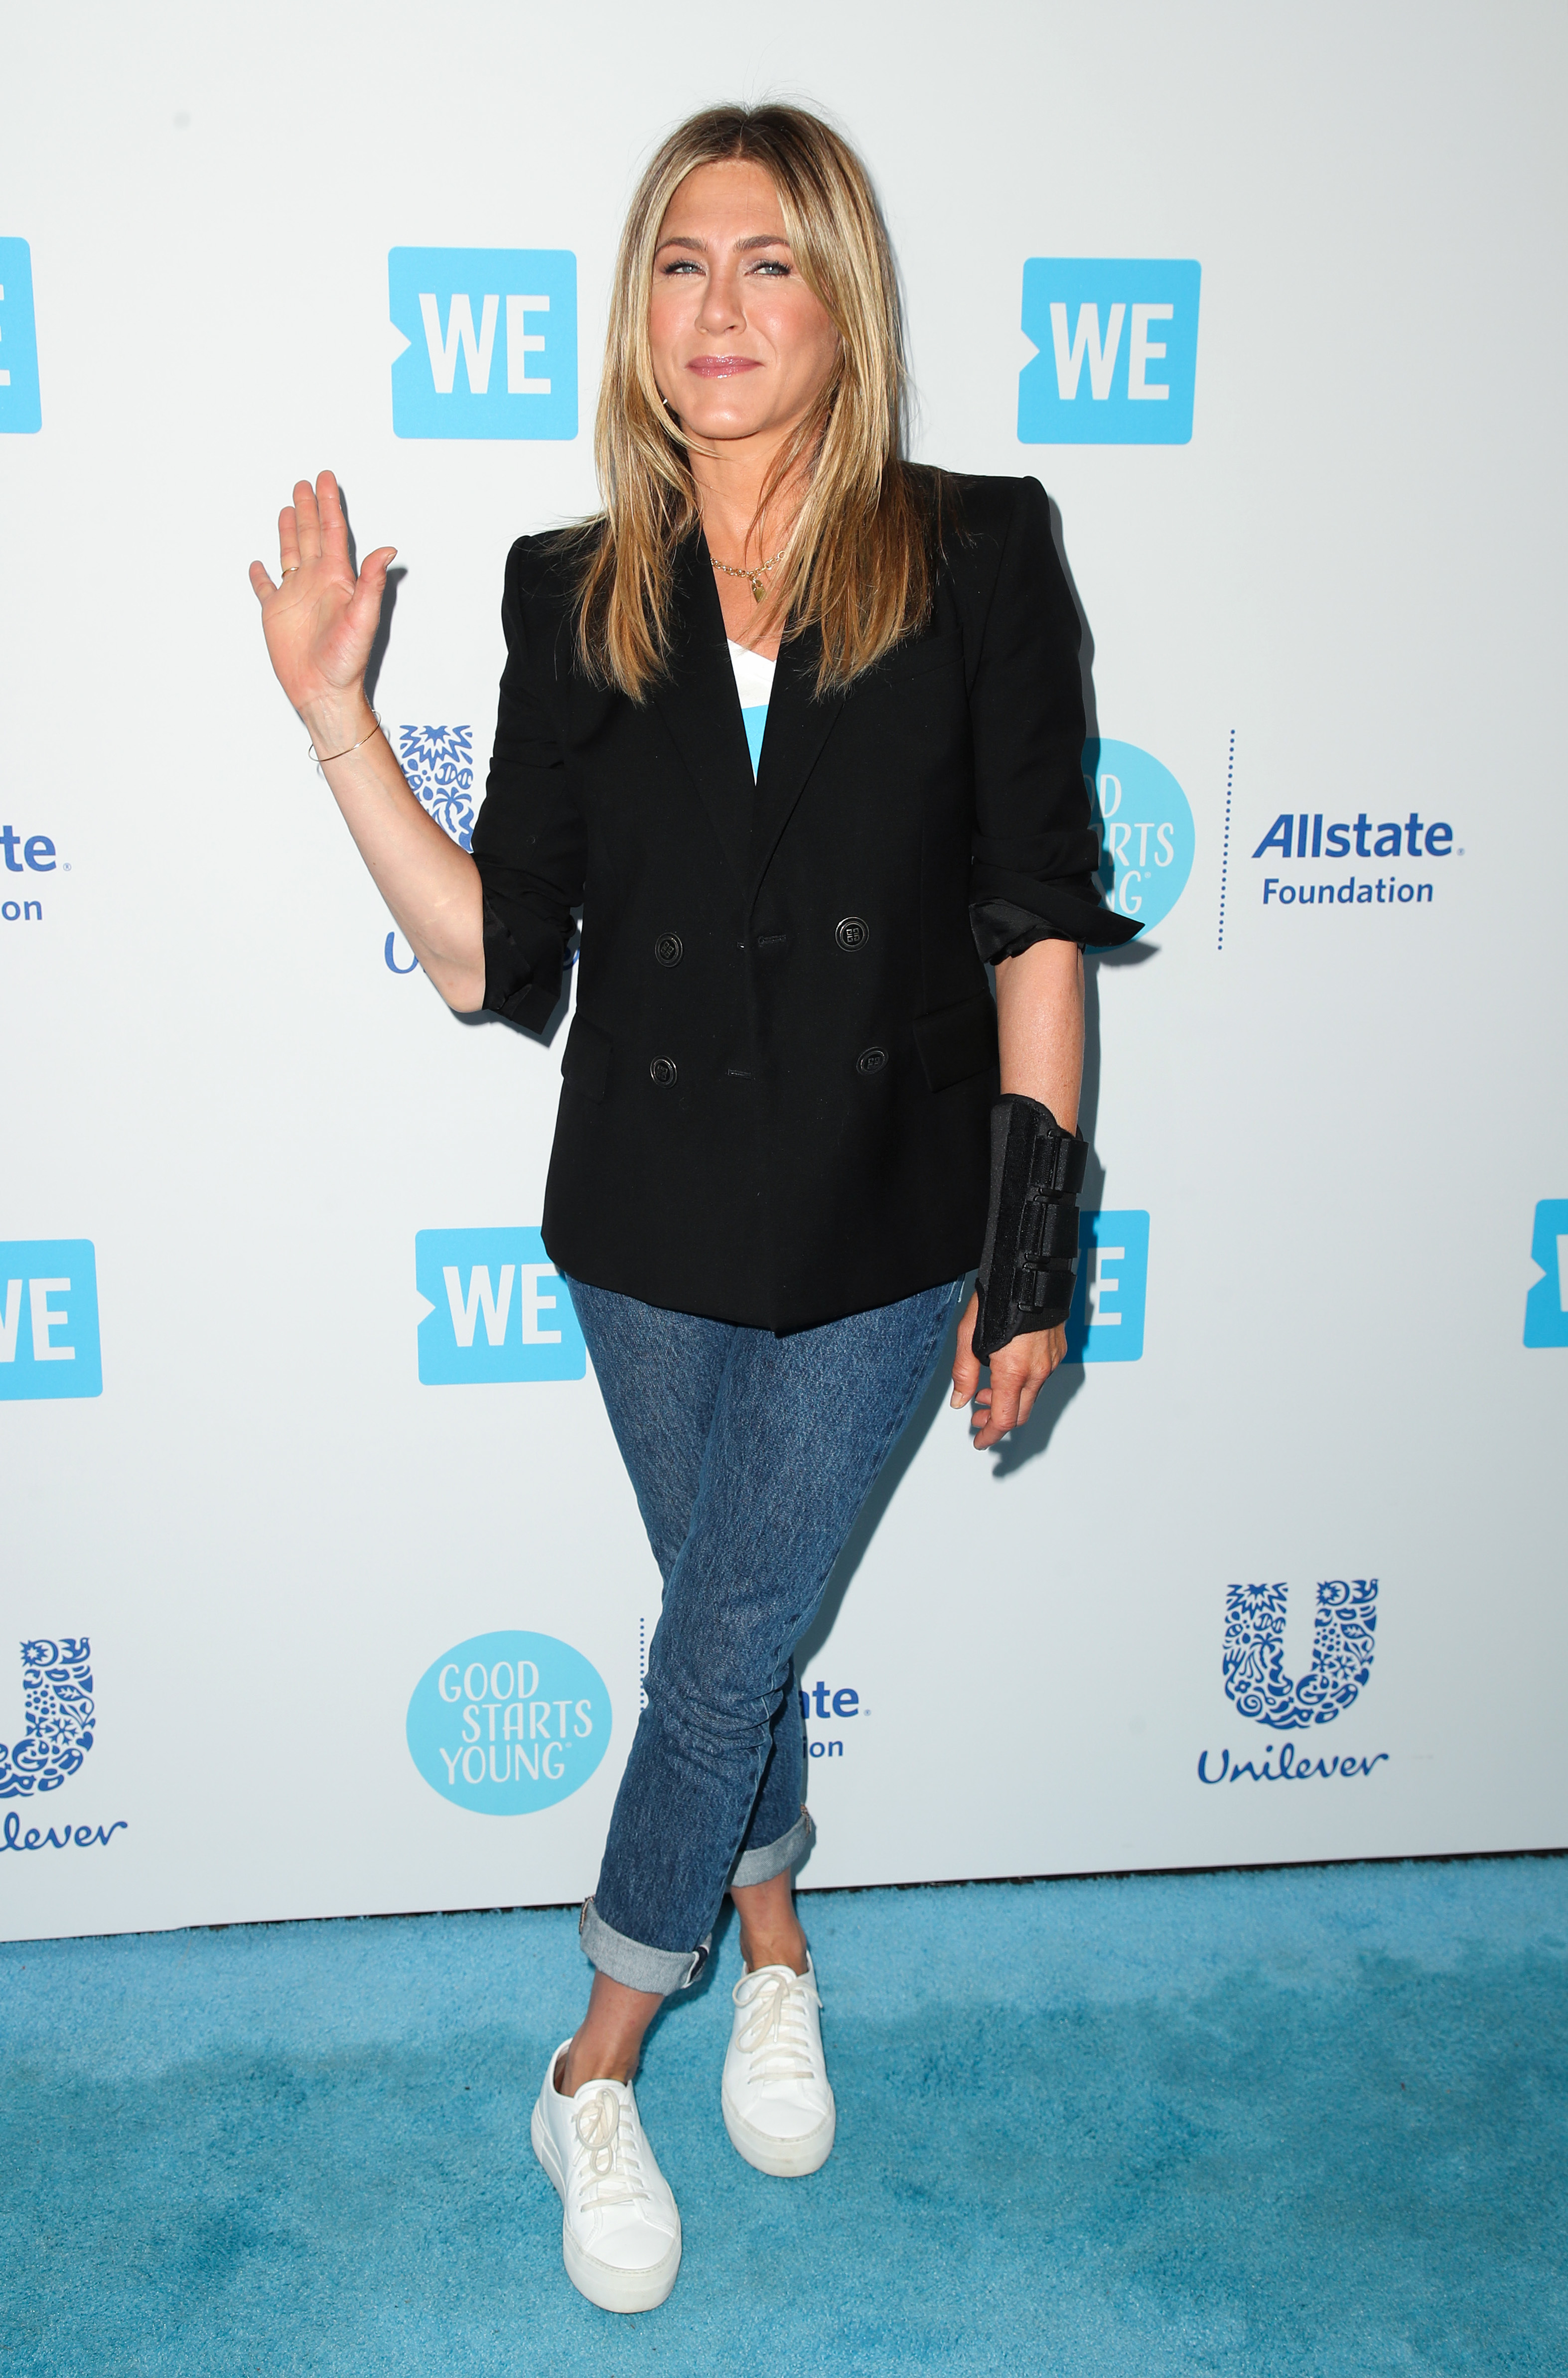 Jennifer Aniston attends the WE Day California event in Los Angeles on April 19, 2018.